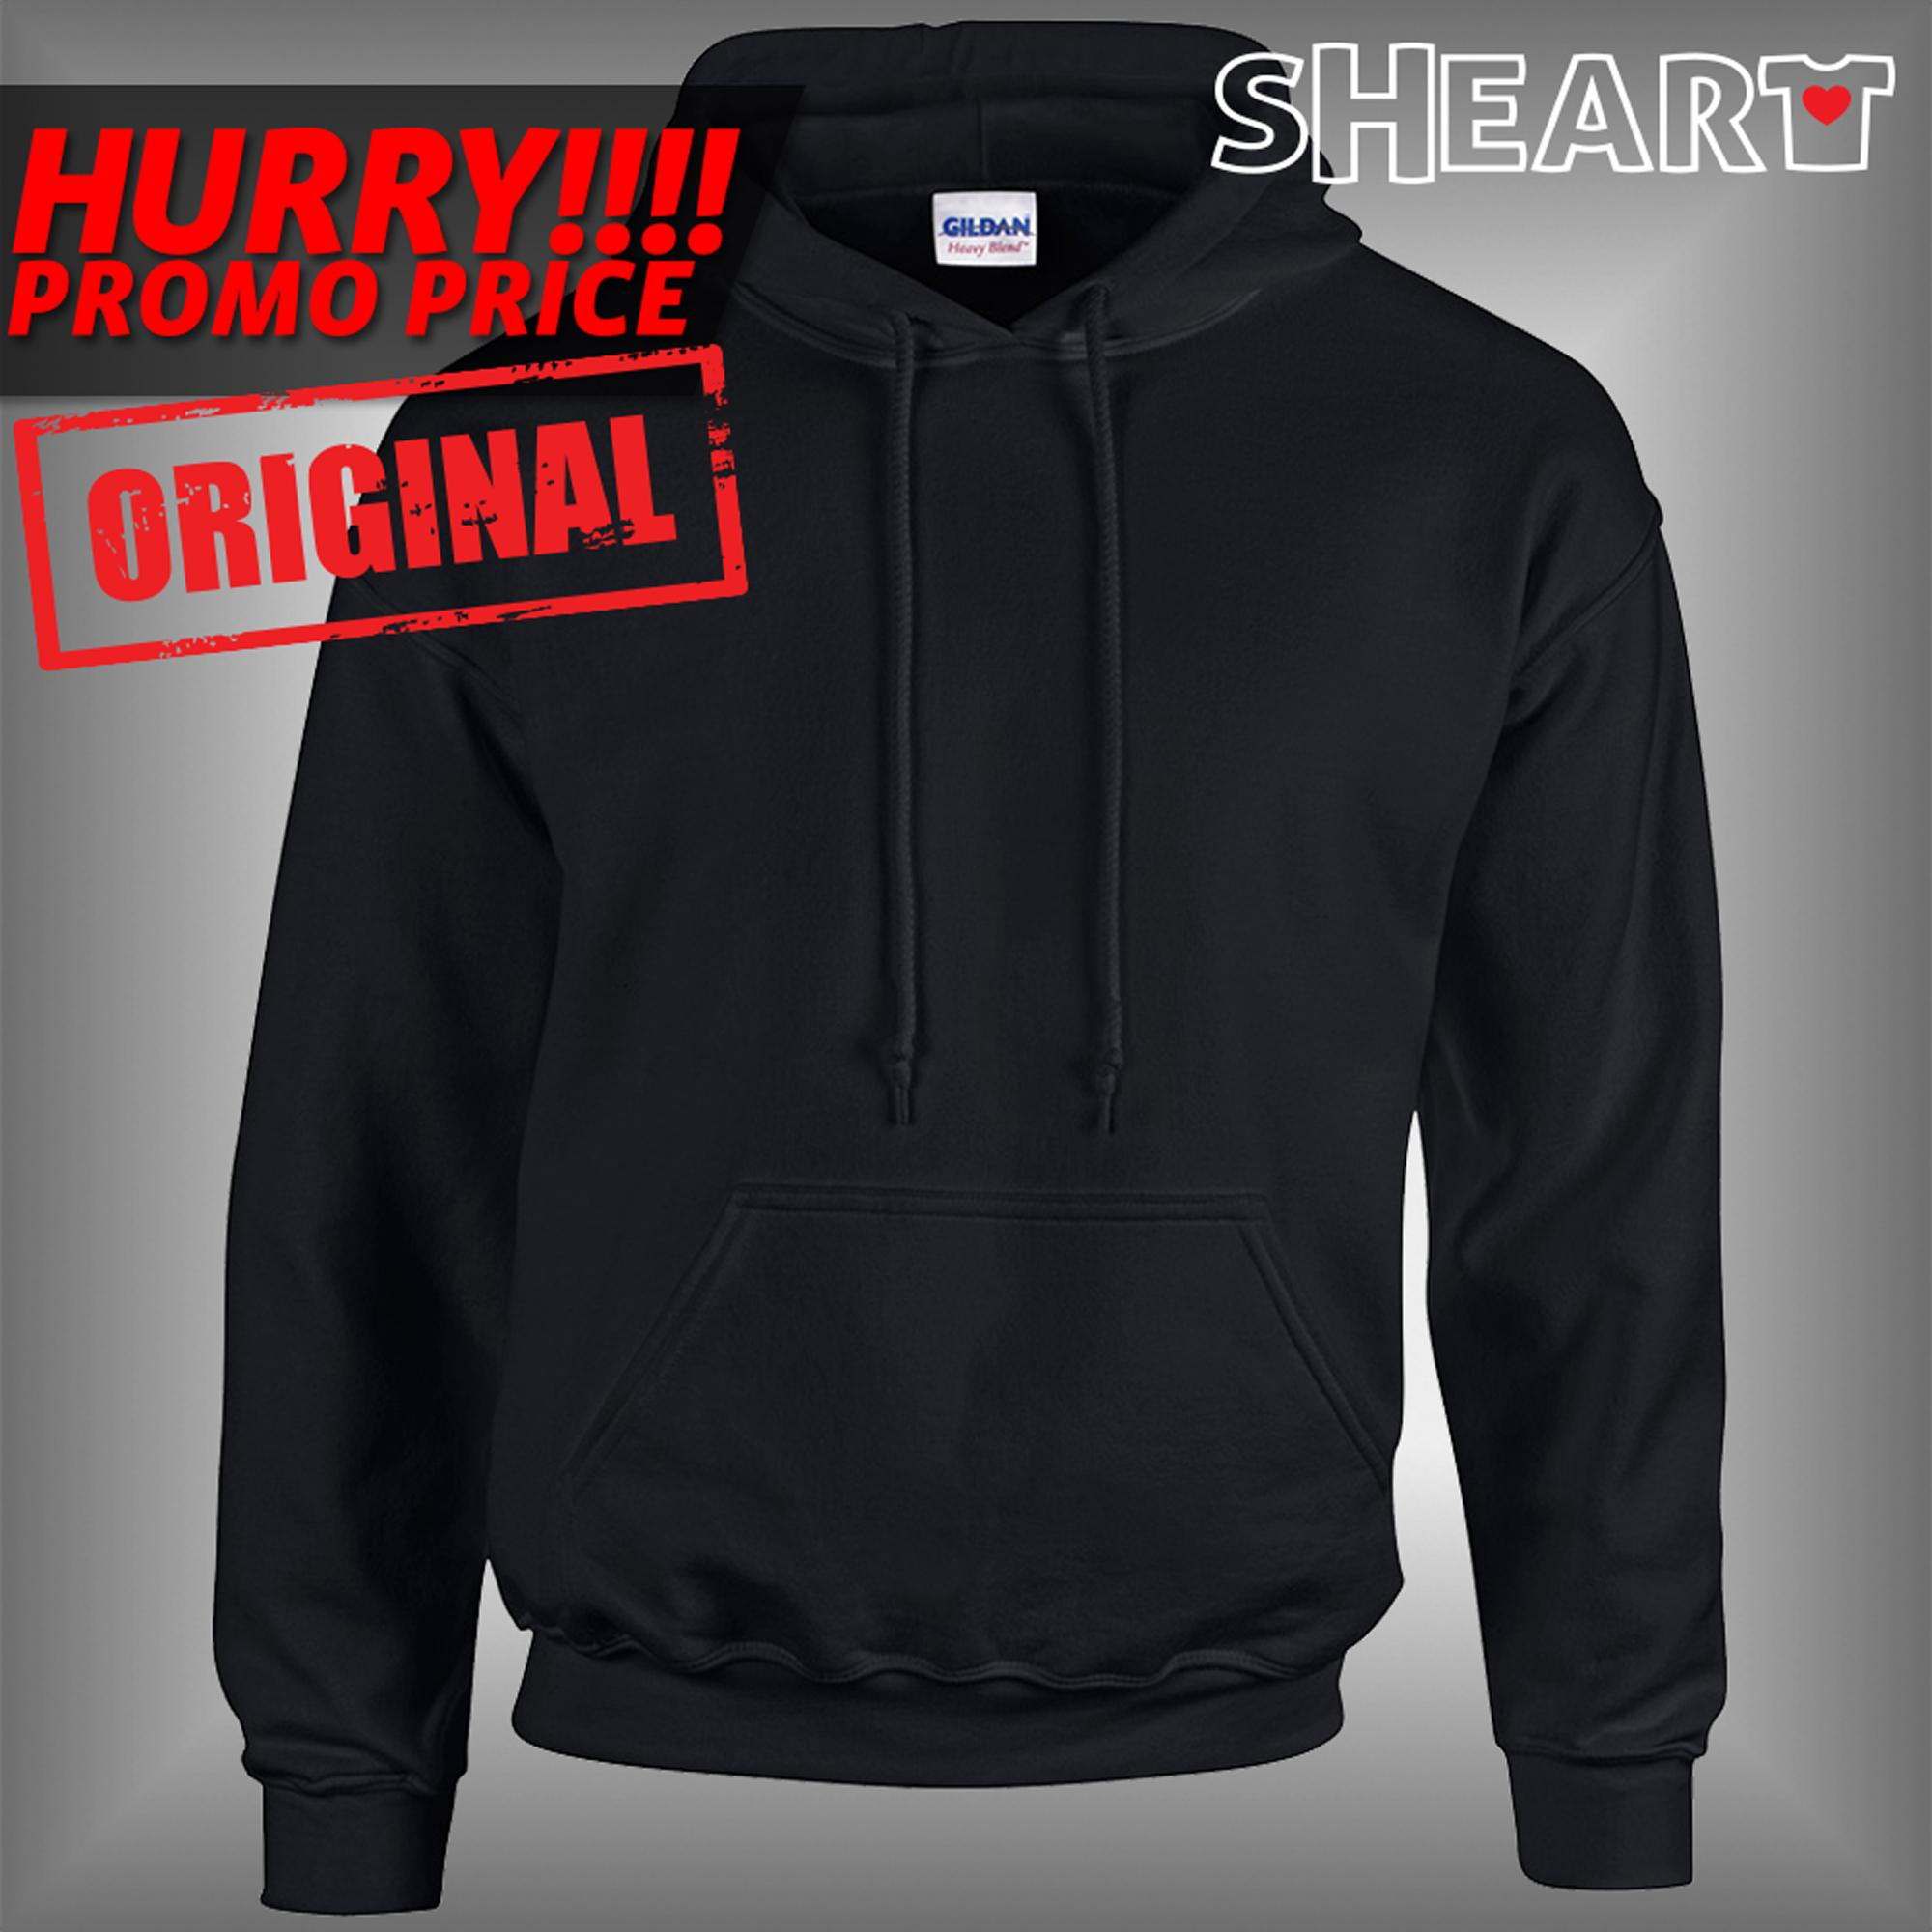 493a8871b80 Mens Hoodies for sale - Hoodie Jackets for Men online brands